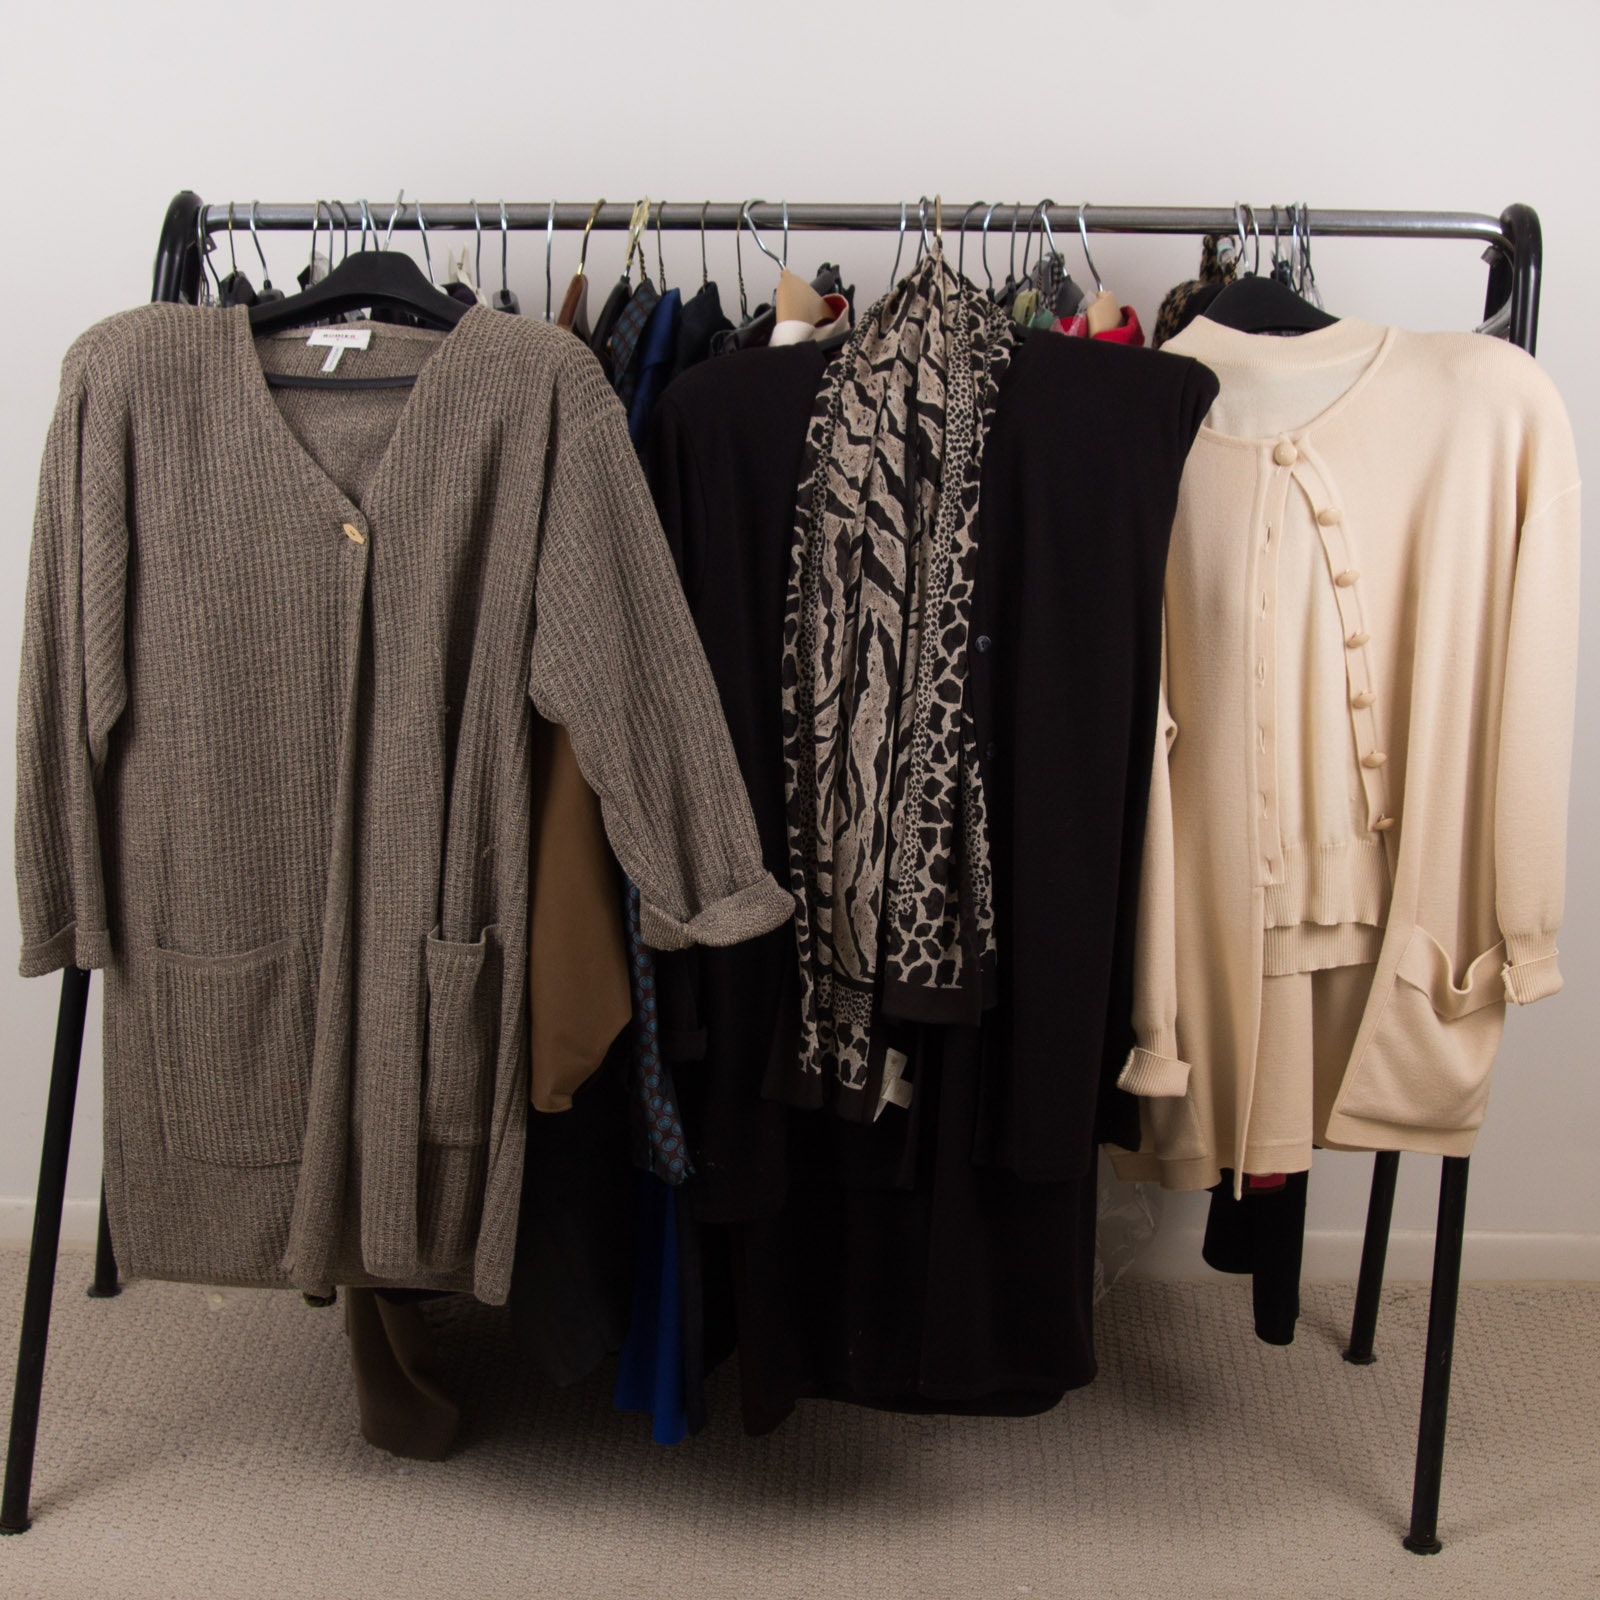 Women's Clothing Including Tory Burch and Dior